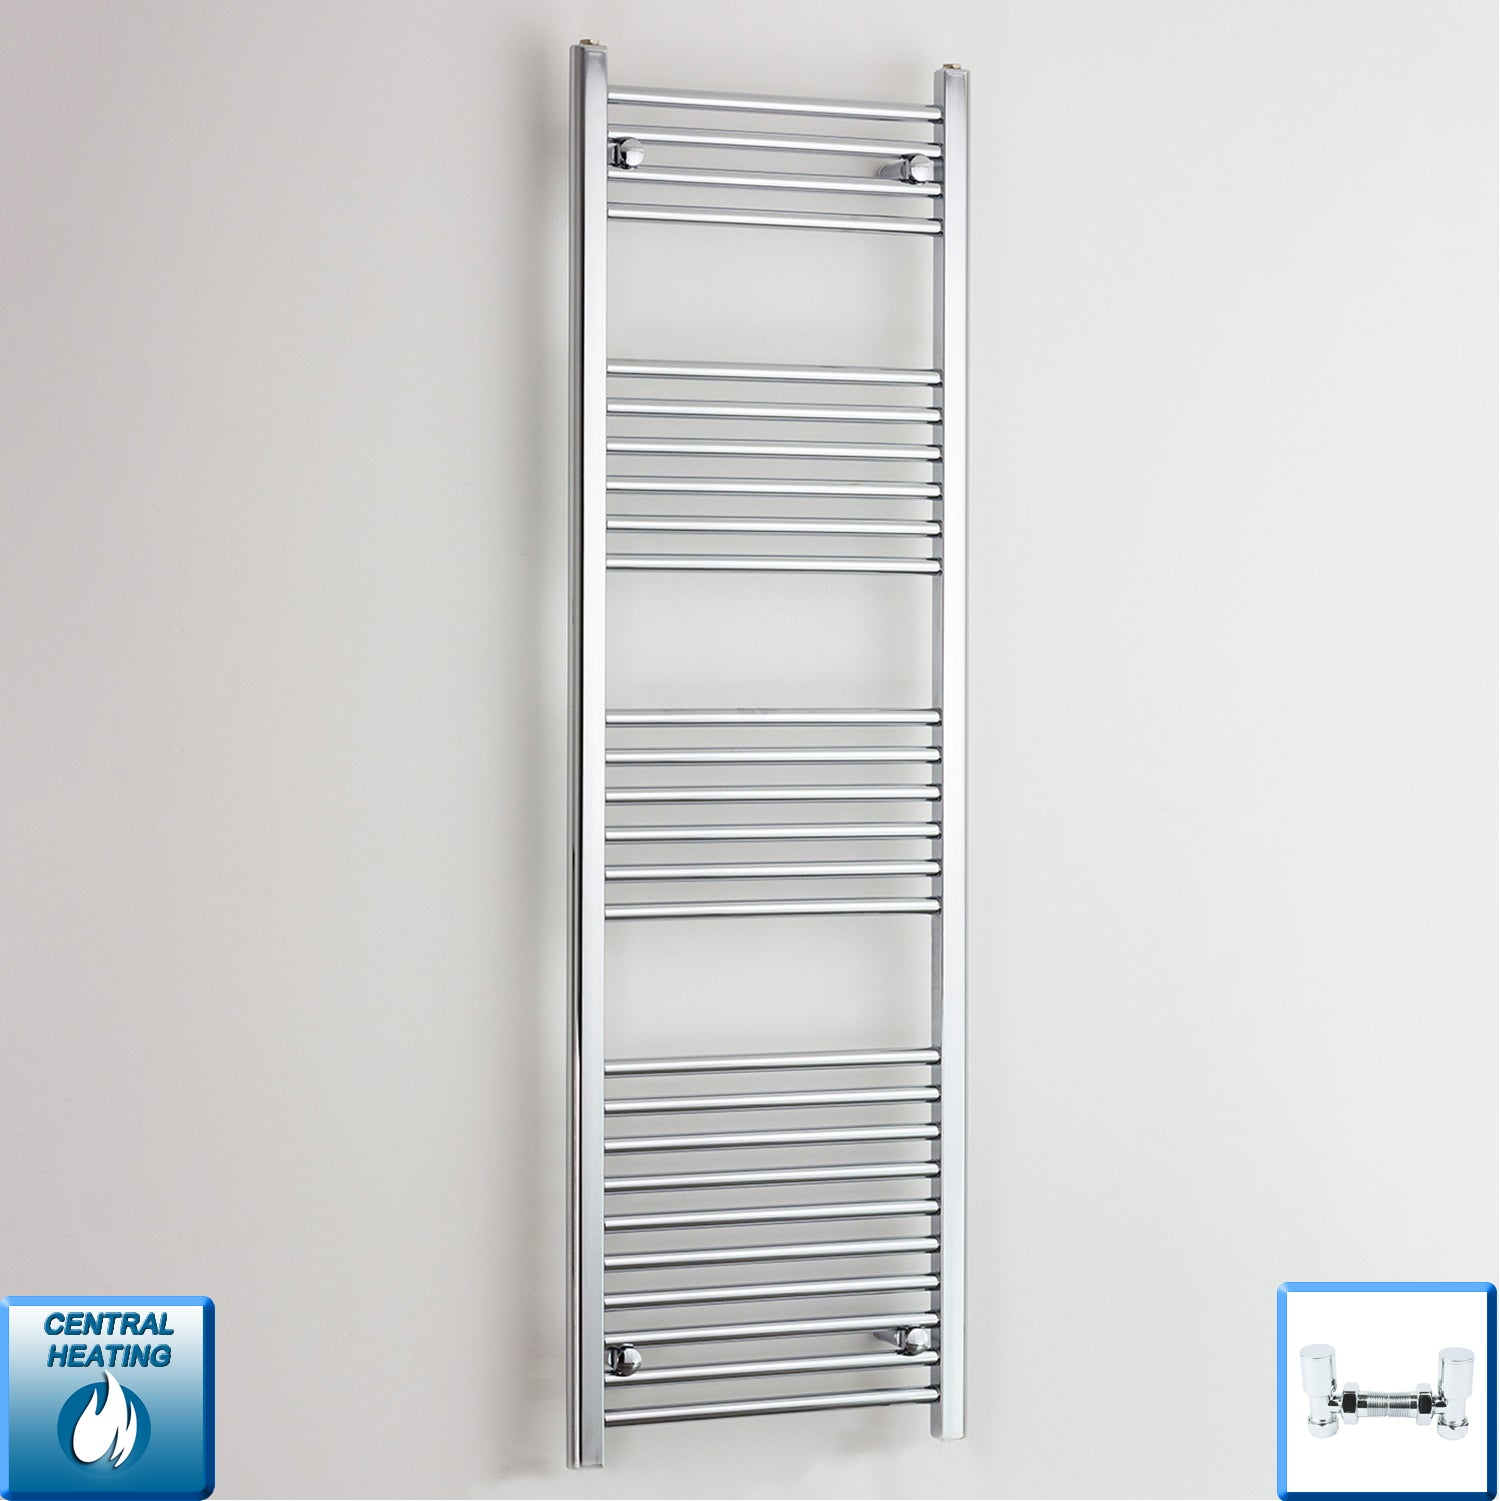 500mm Wide 1600mm High Flat Chrome Heated Towel Rail Radiator HTR,With Angled Valve